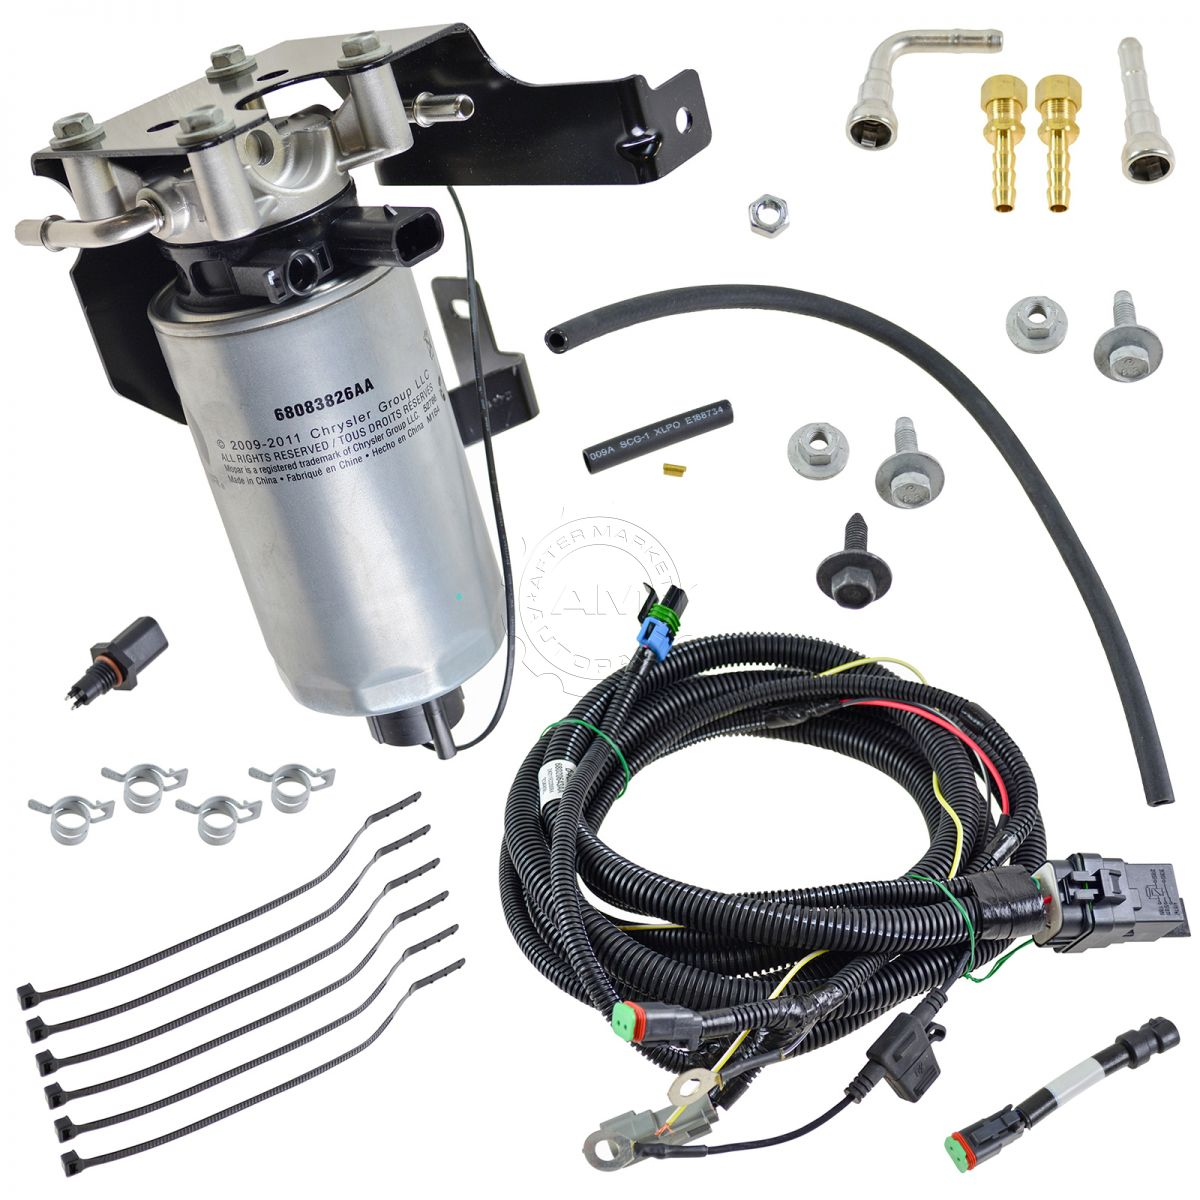 oem severe duty add on fuel filter system kit for dodge